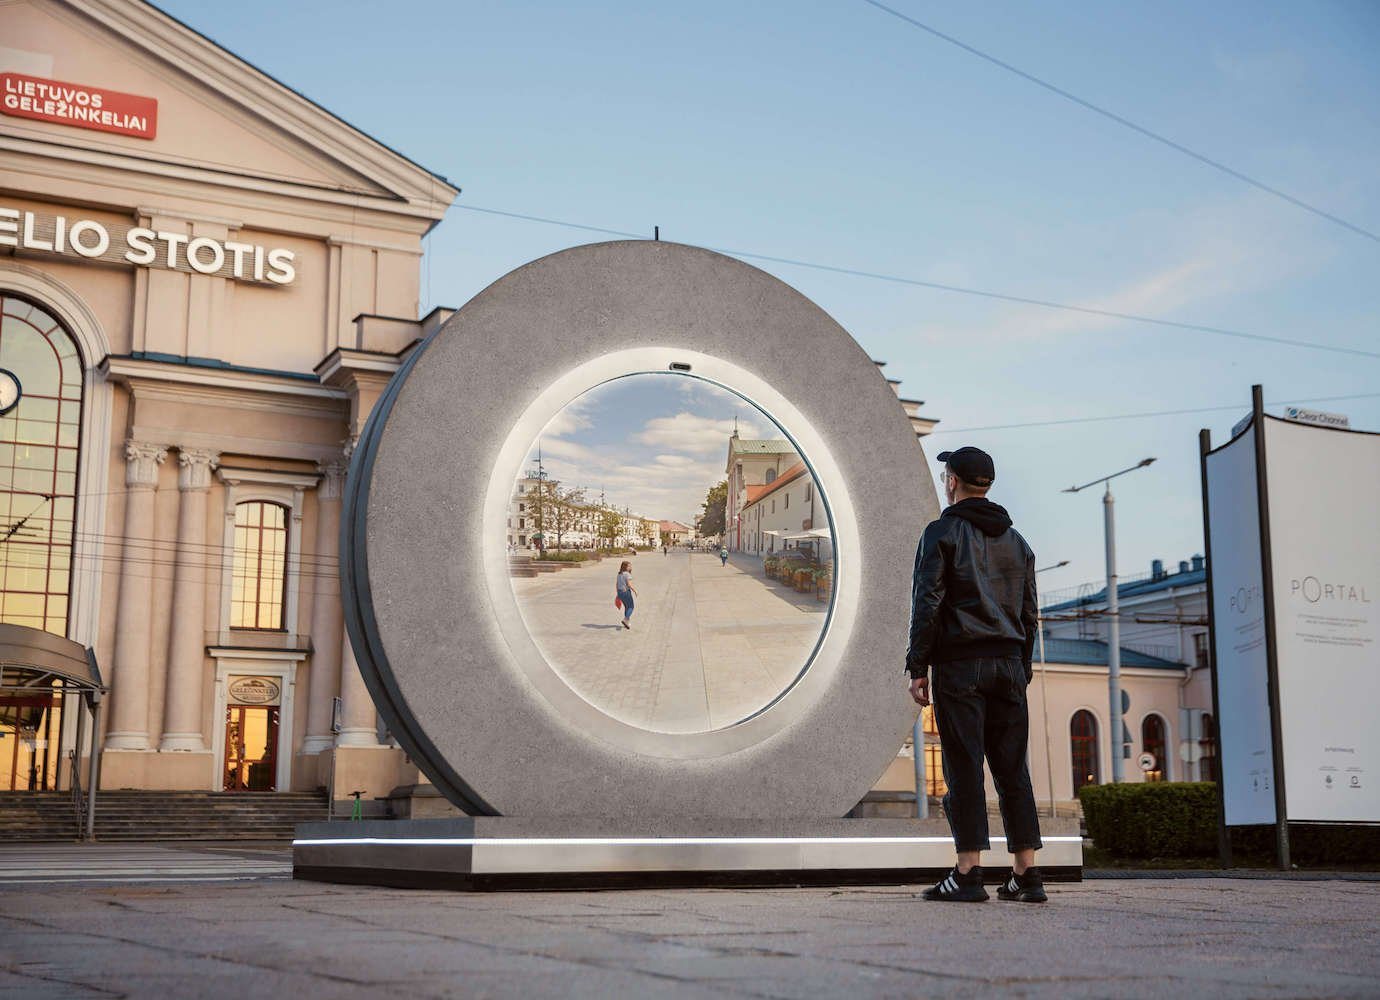 This high-tech portal between Poland and Lithuania is the sci-fi invention we've been waiting for